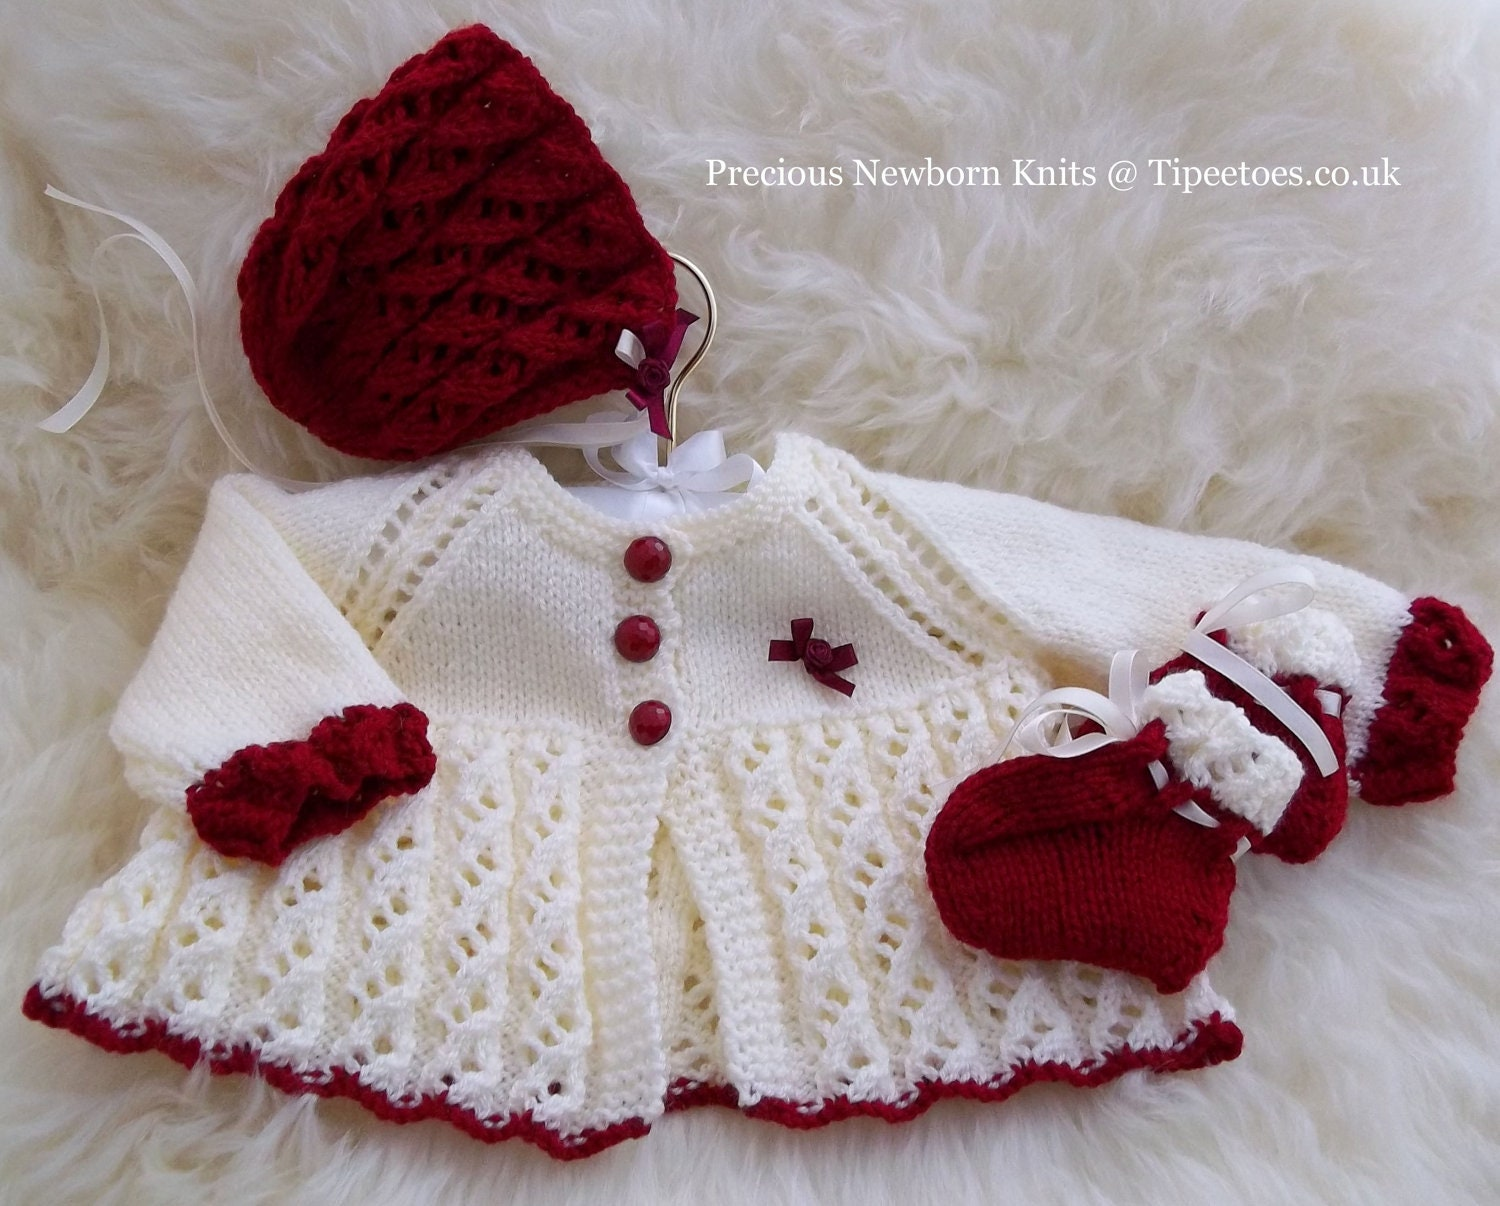 Knitting Sweater Design For Baby Girl : Baby Girls or Reborn Dolls Knitting Pattern Download PDF